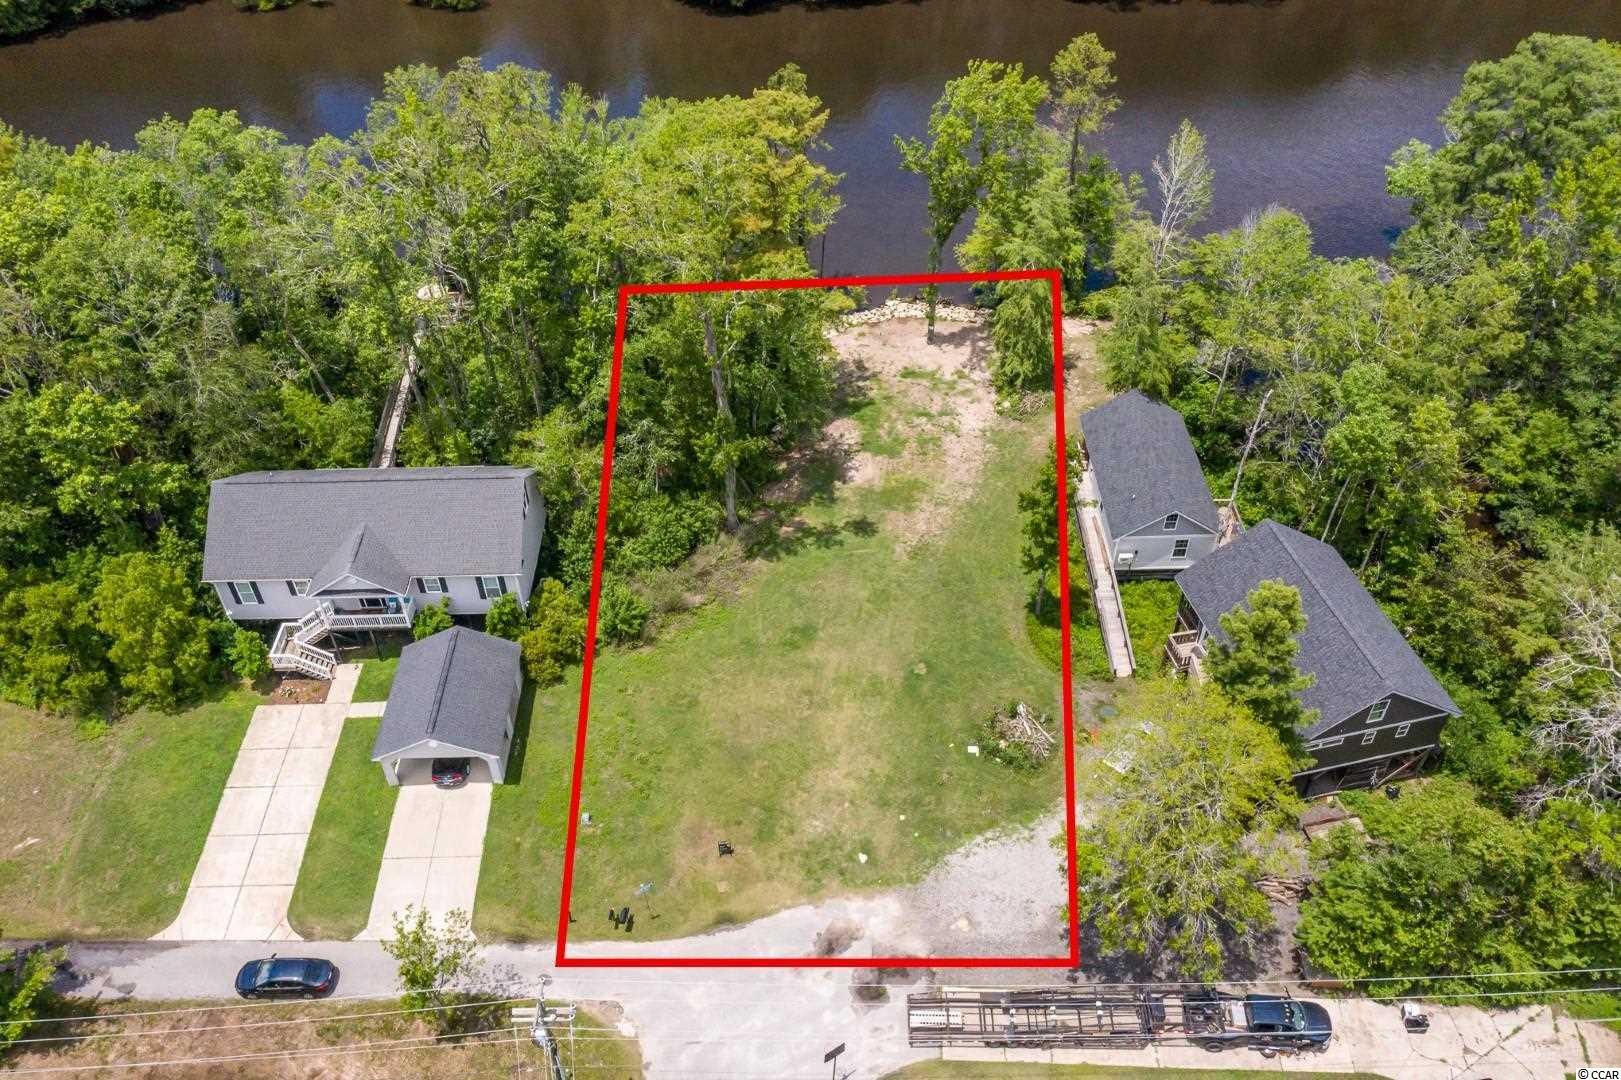 Don't miss this rare opportunity to build your dream home on this .45 acre riverfront lot in this quiet waterway community with NO HOA! This lot has been cleared, has utilities to site, and also includes a seawall so you are ready to start building. Park your boat right at home with the availability to build a dock on this property! Perfectly situated close to all of the Grand Strand's finest dining, shopping, golf, and entertainment attractions, with easy access to highway 707 and highway 17.